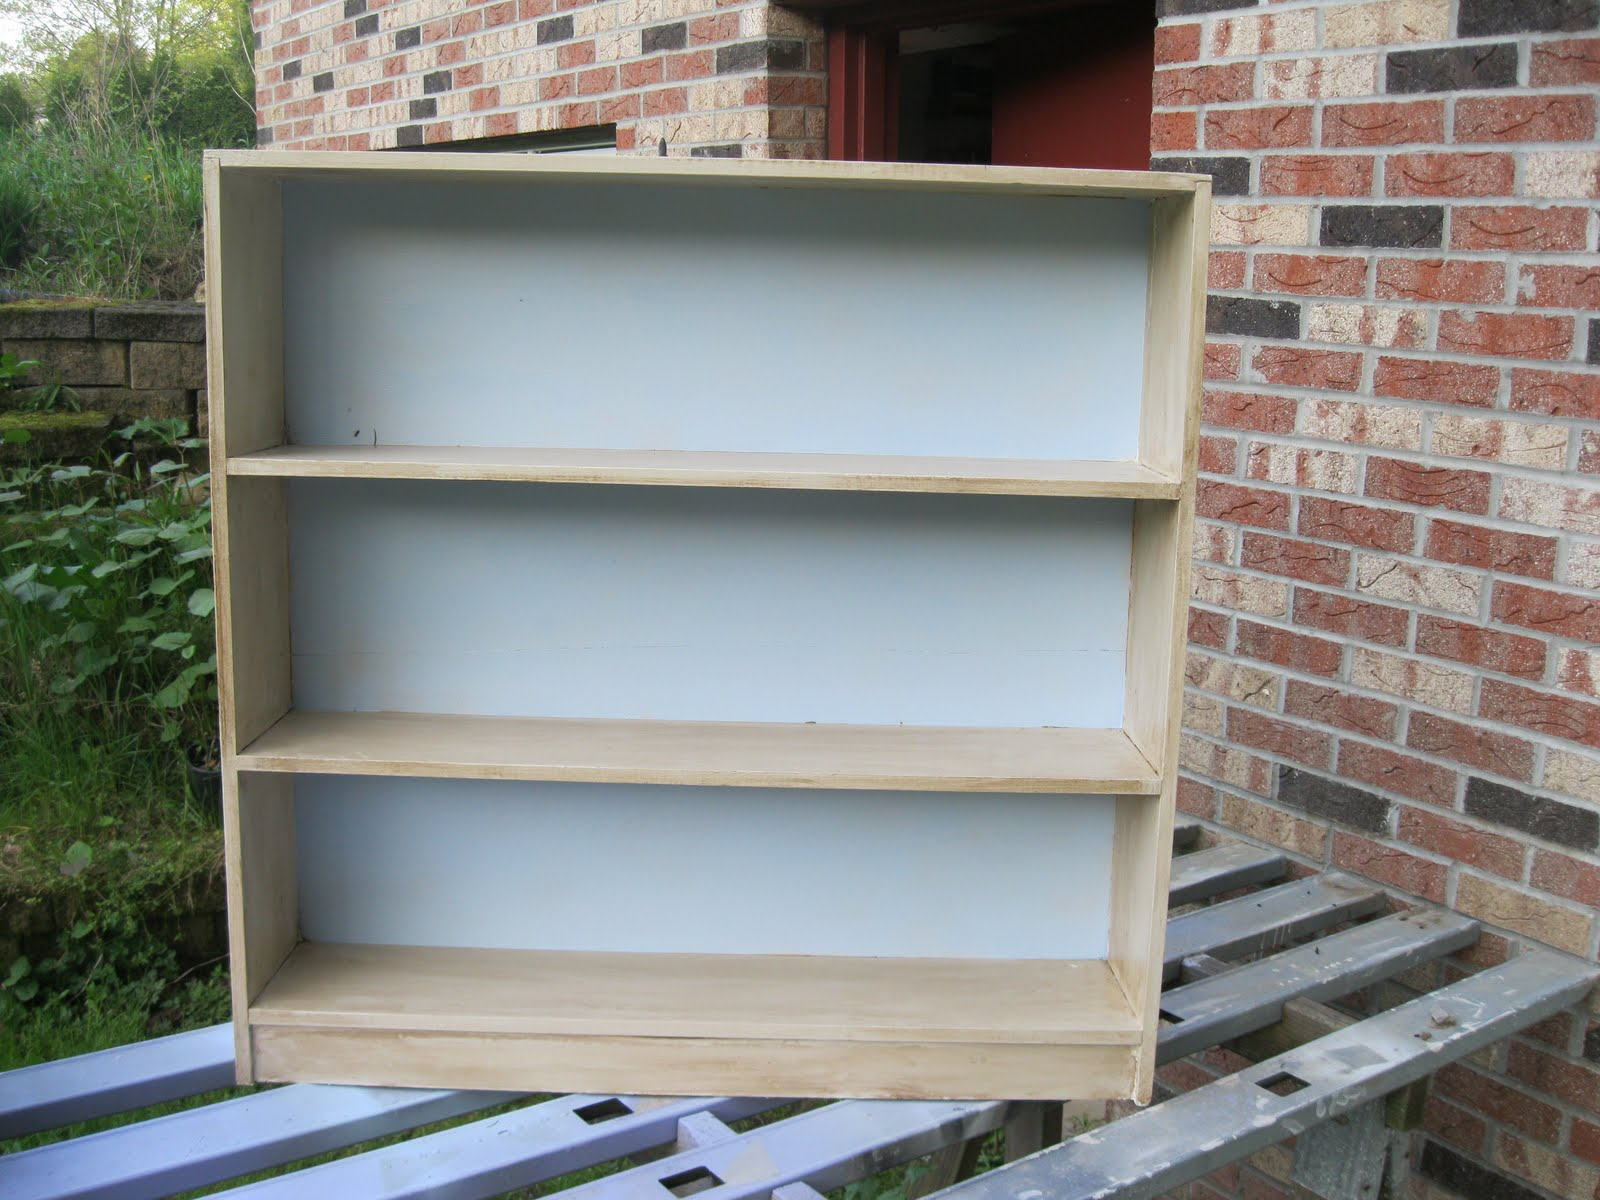 Marvelous photograph of Monkey See Monkey Do!: Painting a Bookcase: Before & After with #4E677D color and 1600x1200 pixels